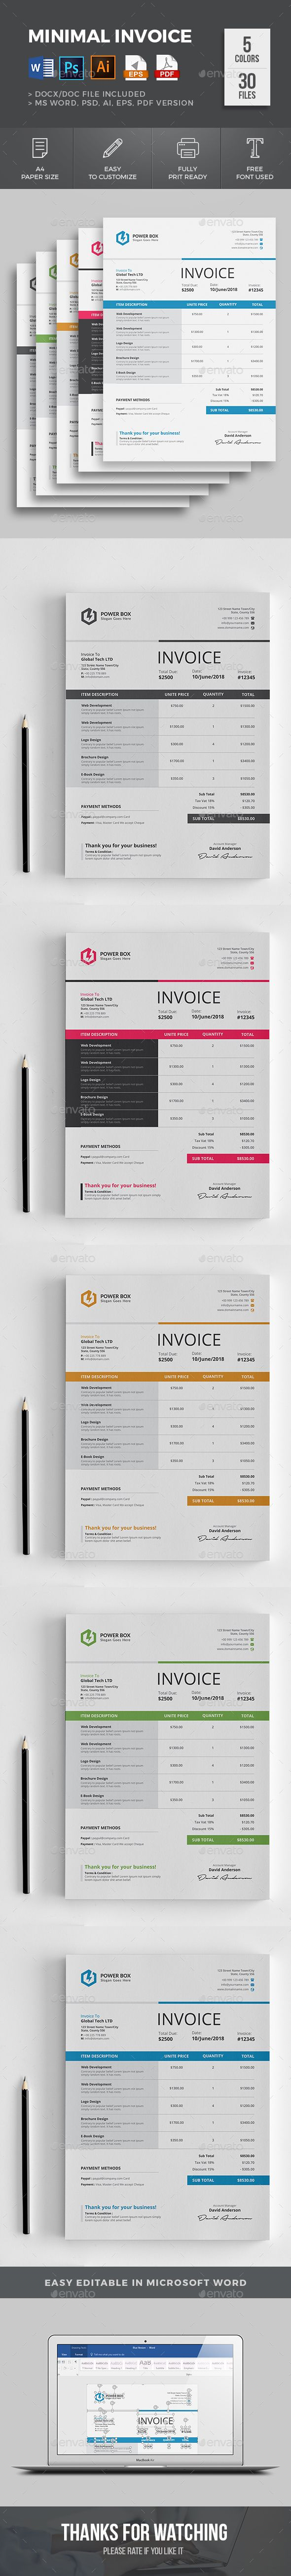 #Invoice - #Proposals & Invoices #Stationery Download here: https://graphicriver.net/item/invoice/19530976?alena994